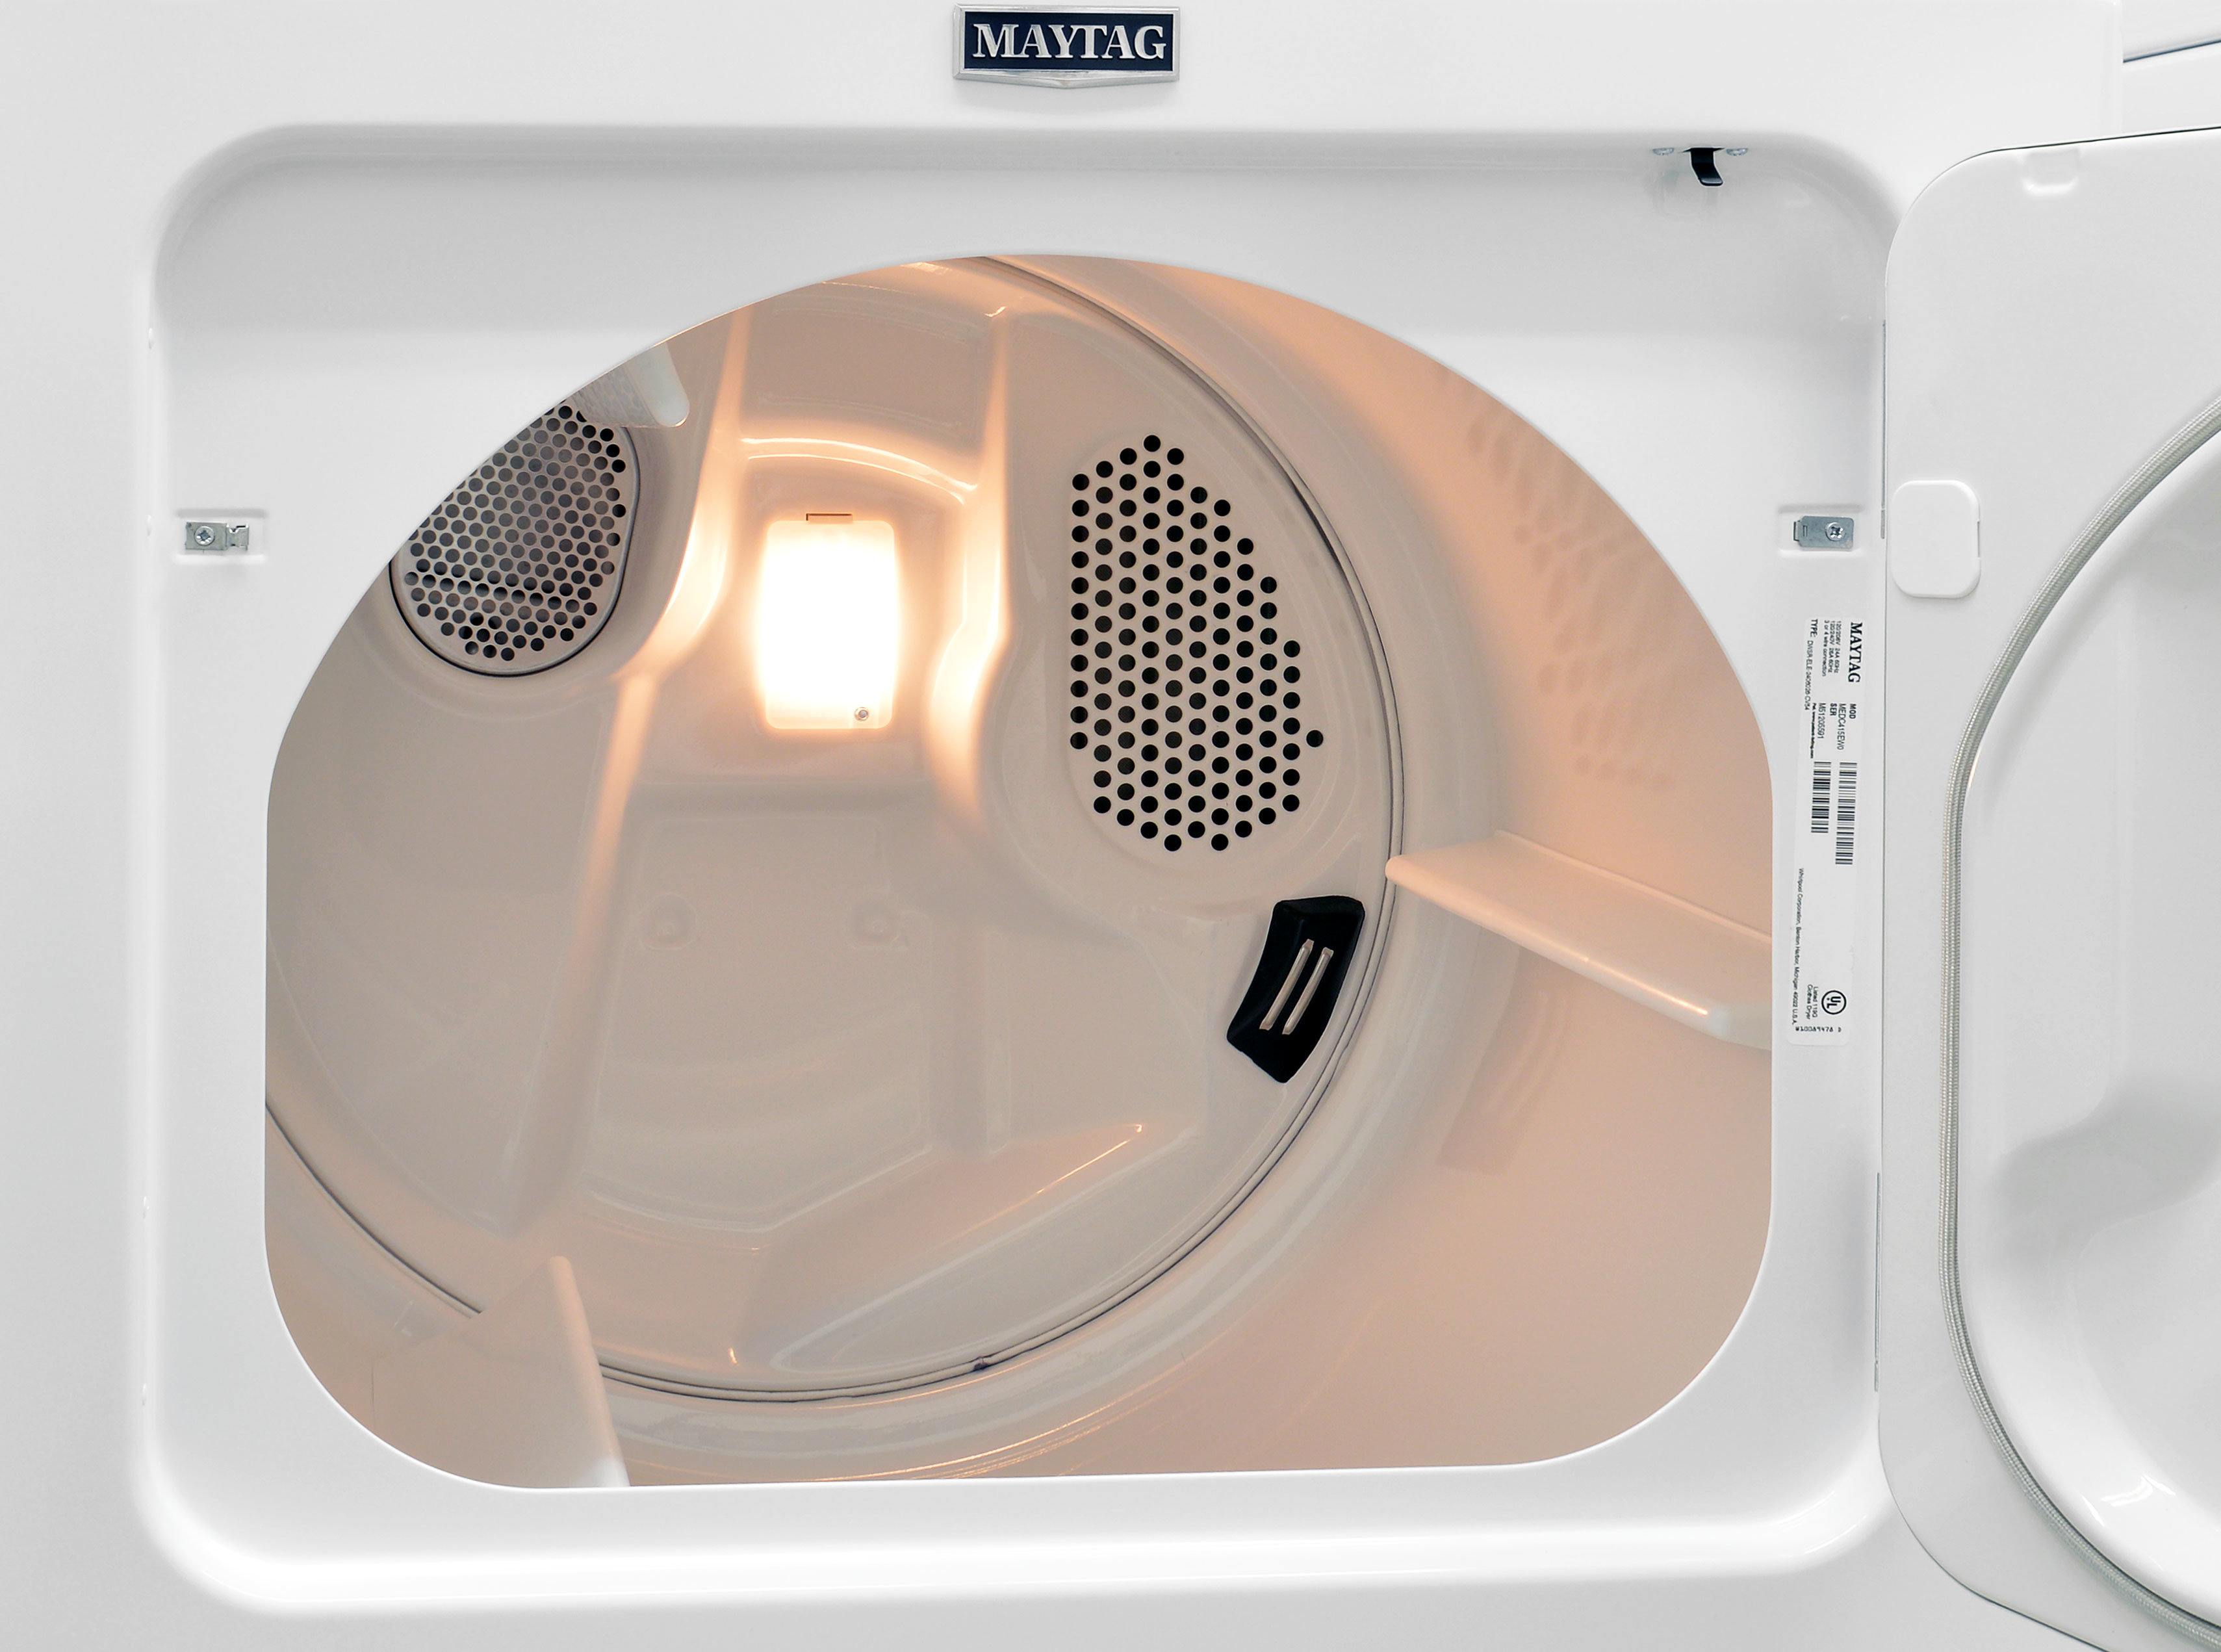 maytag centennial medc415ew dryer review laundry. Black Bedroom Furniture Sets. Home Design Ideas